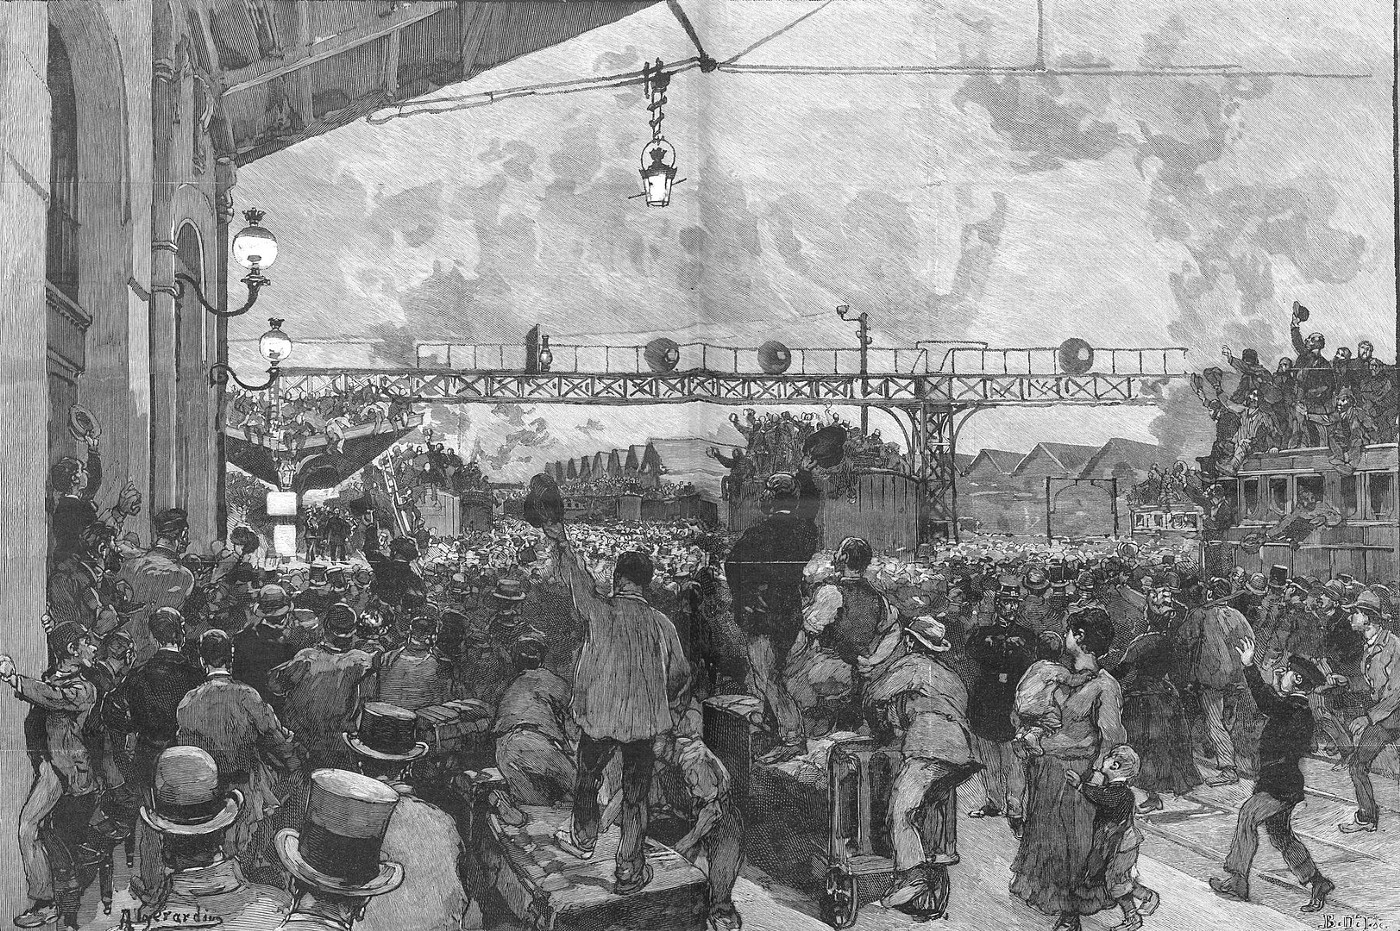 A black-and-white painting from 1887 shows a crowd waving farewell to General Boulanger from Gare de Lyon in Paris.